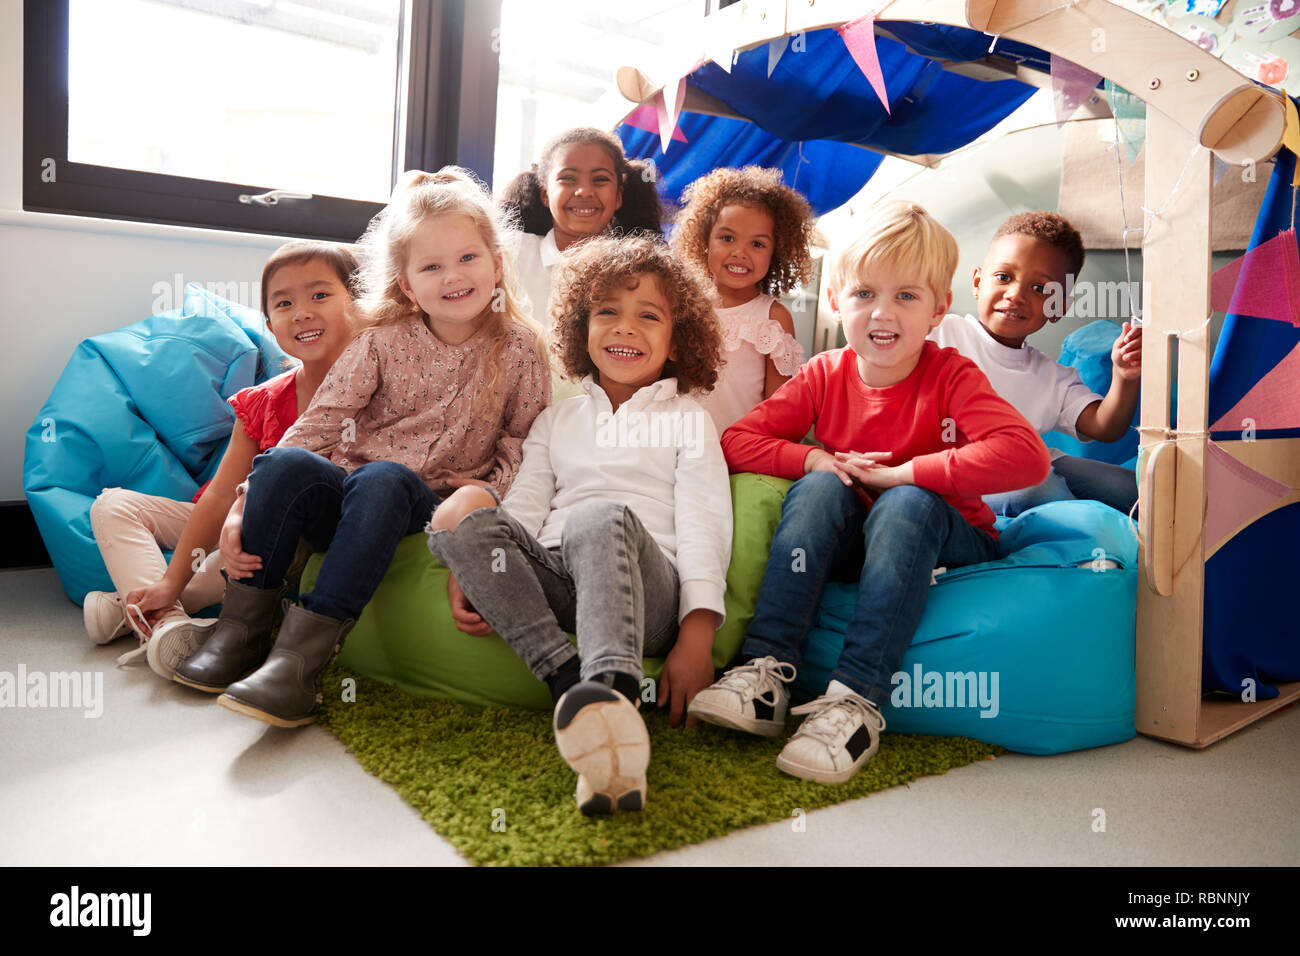 A multi-ethnic group of infant school children sitting on bean bags in a comfortable corner of the classroom, smiling to camera, low angle, close up - Stock Image